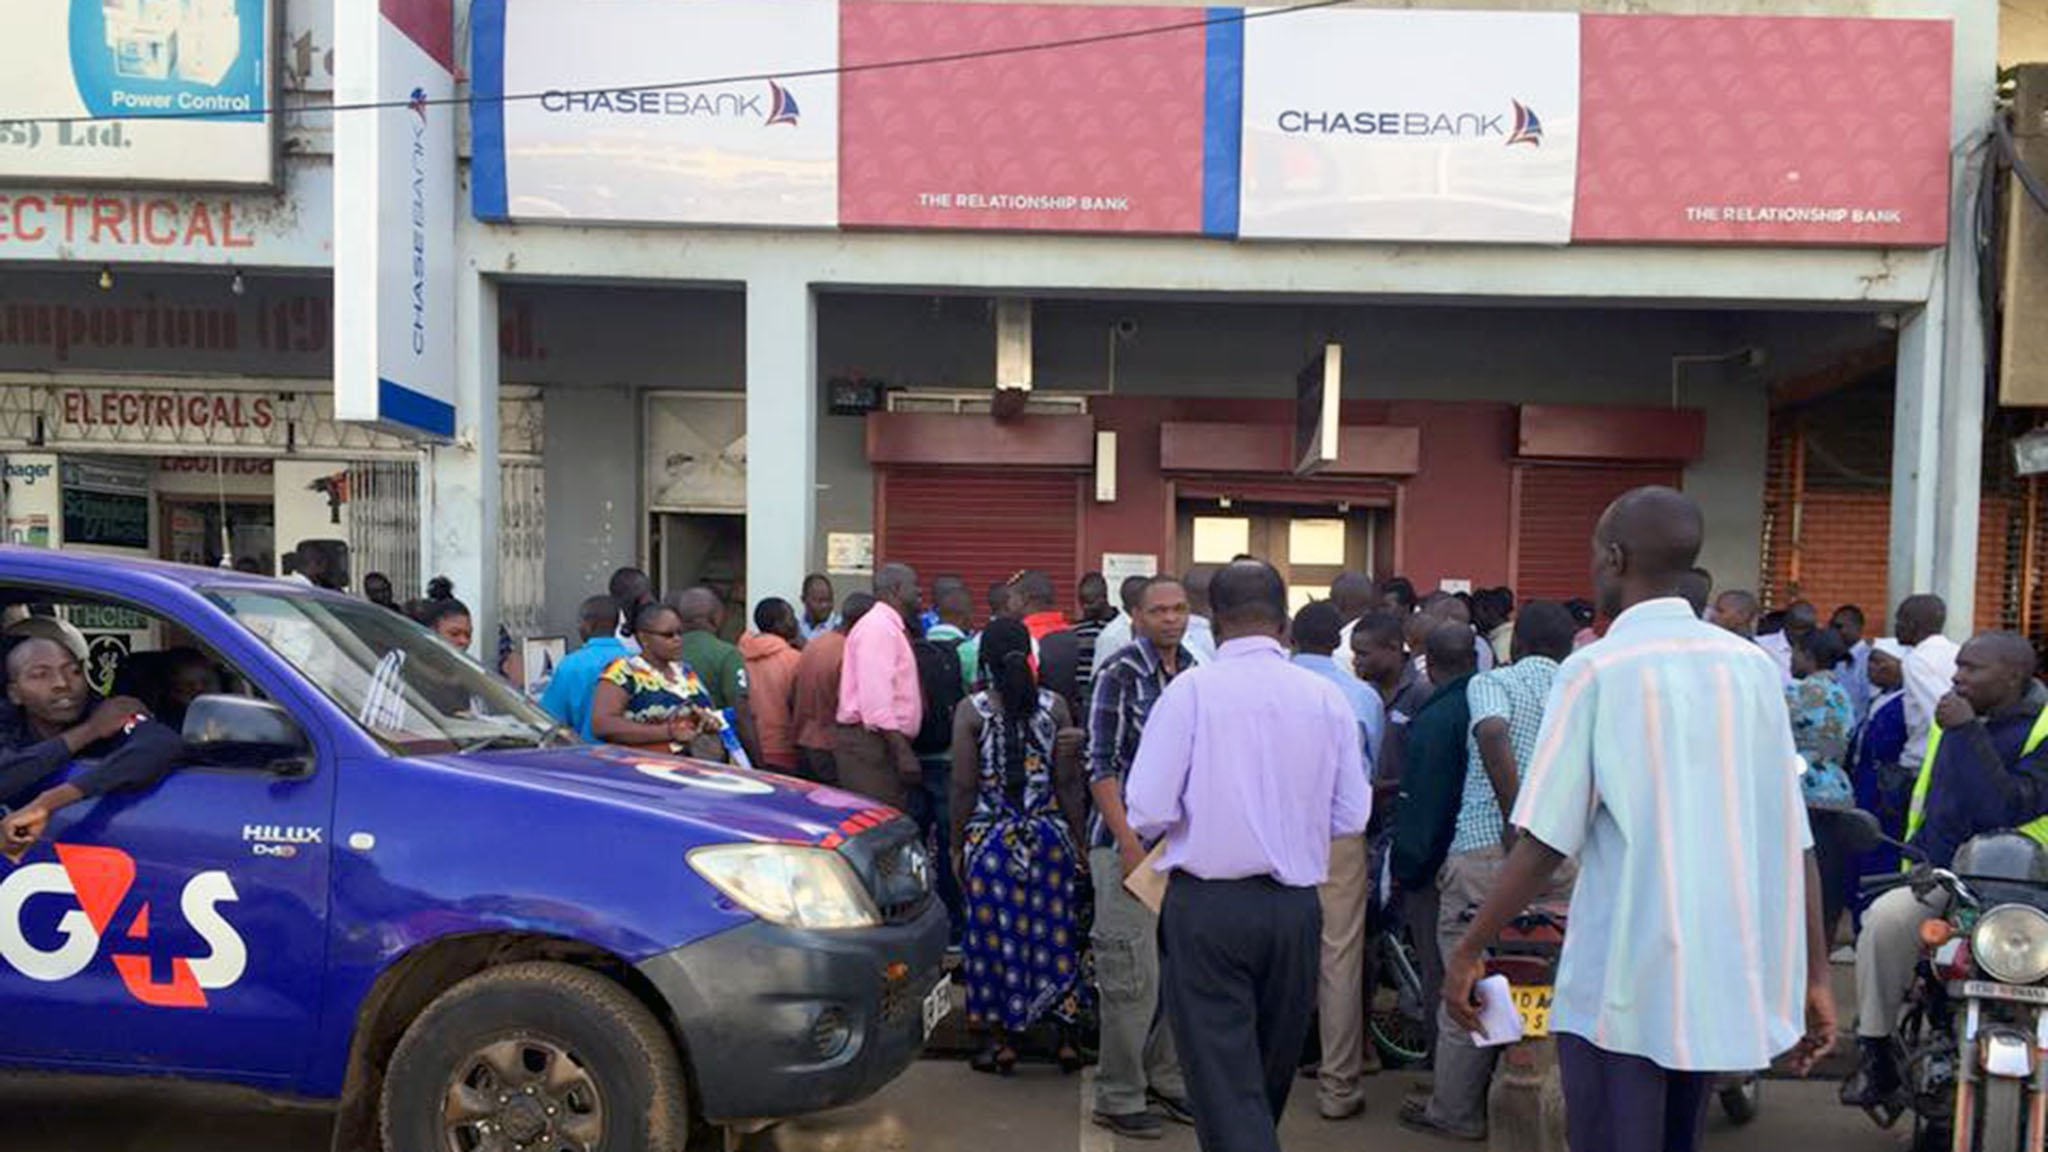 s kcb to manage opening of chase bank